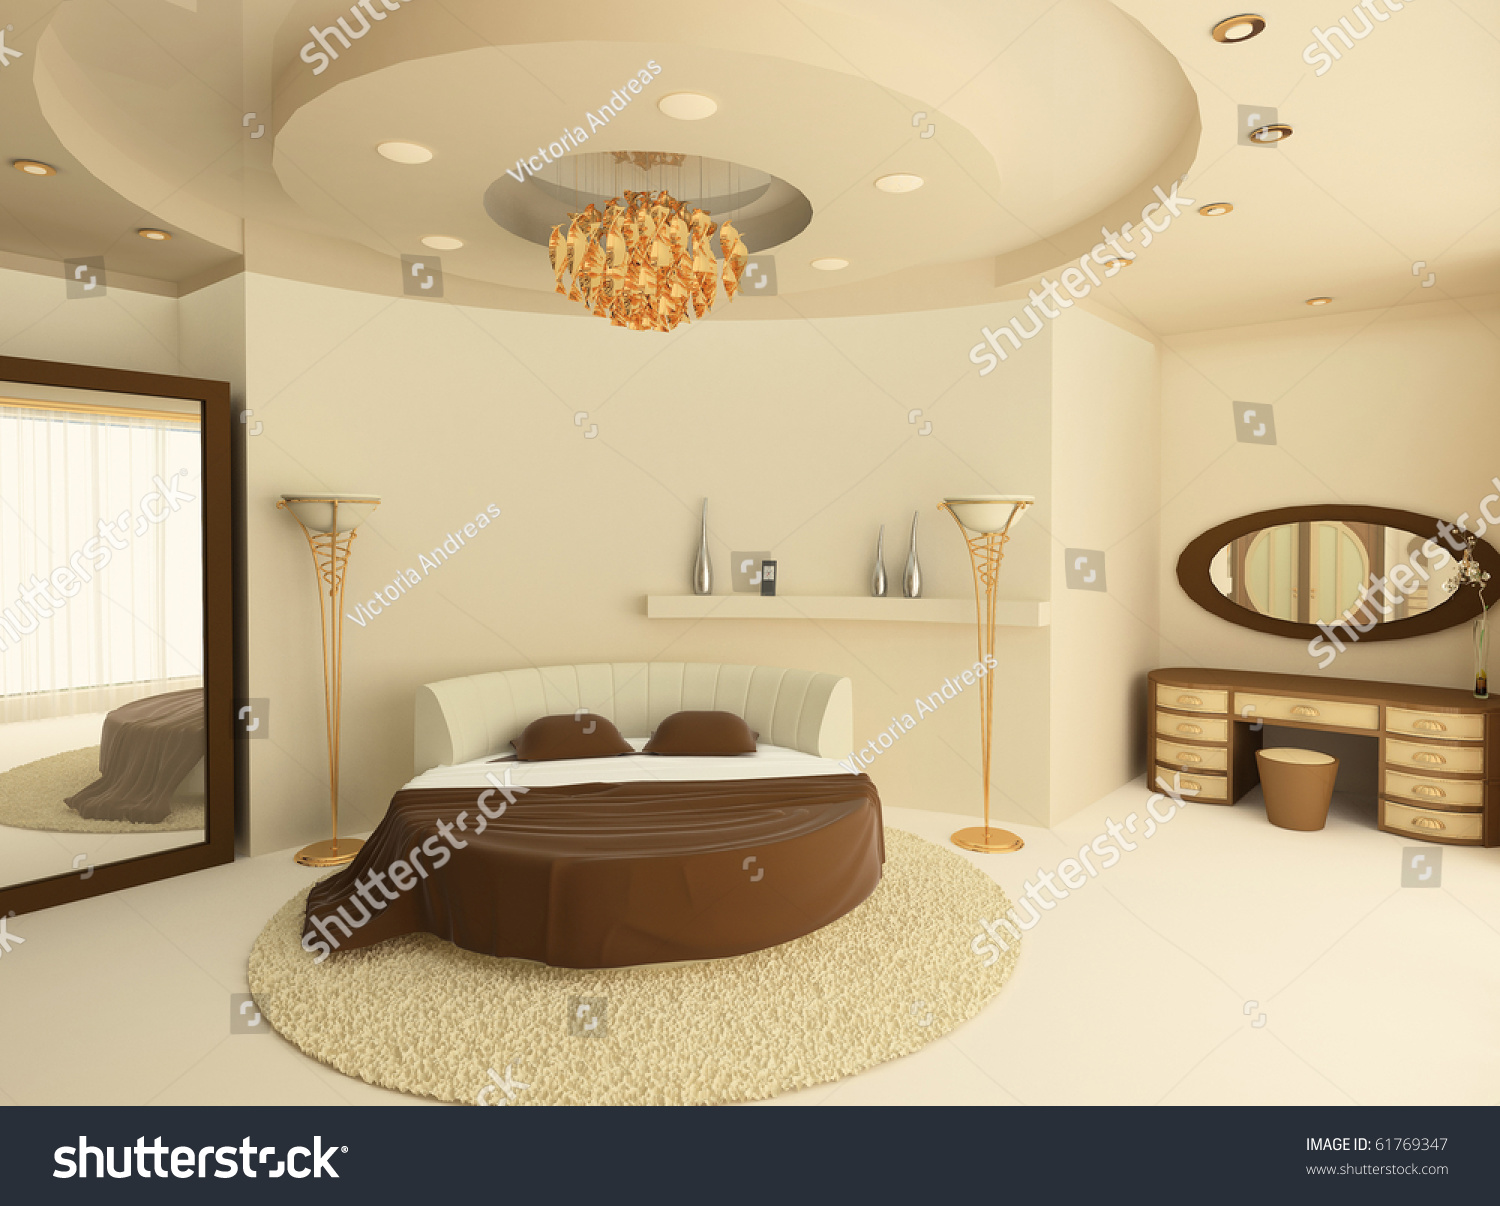 Bed Suspended From Ceiling Round Bed With A Suspended Ceiling In A Luxurious Bedroom